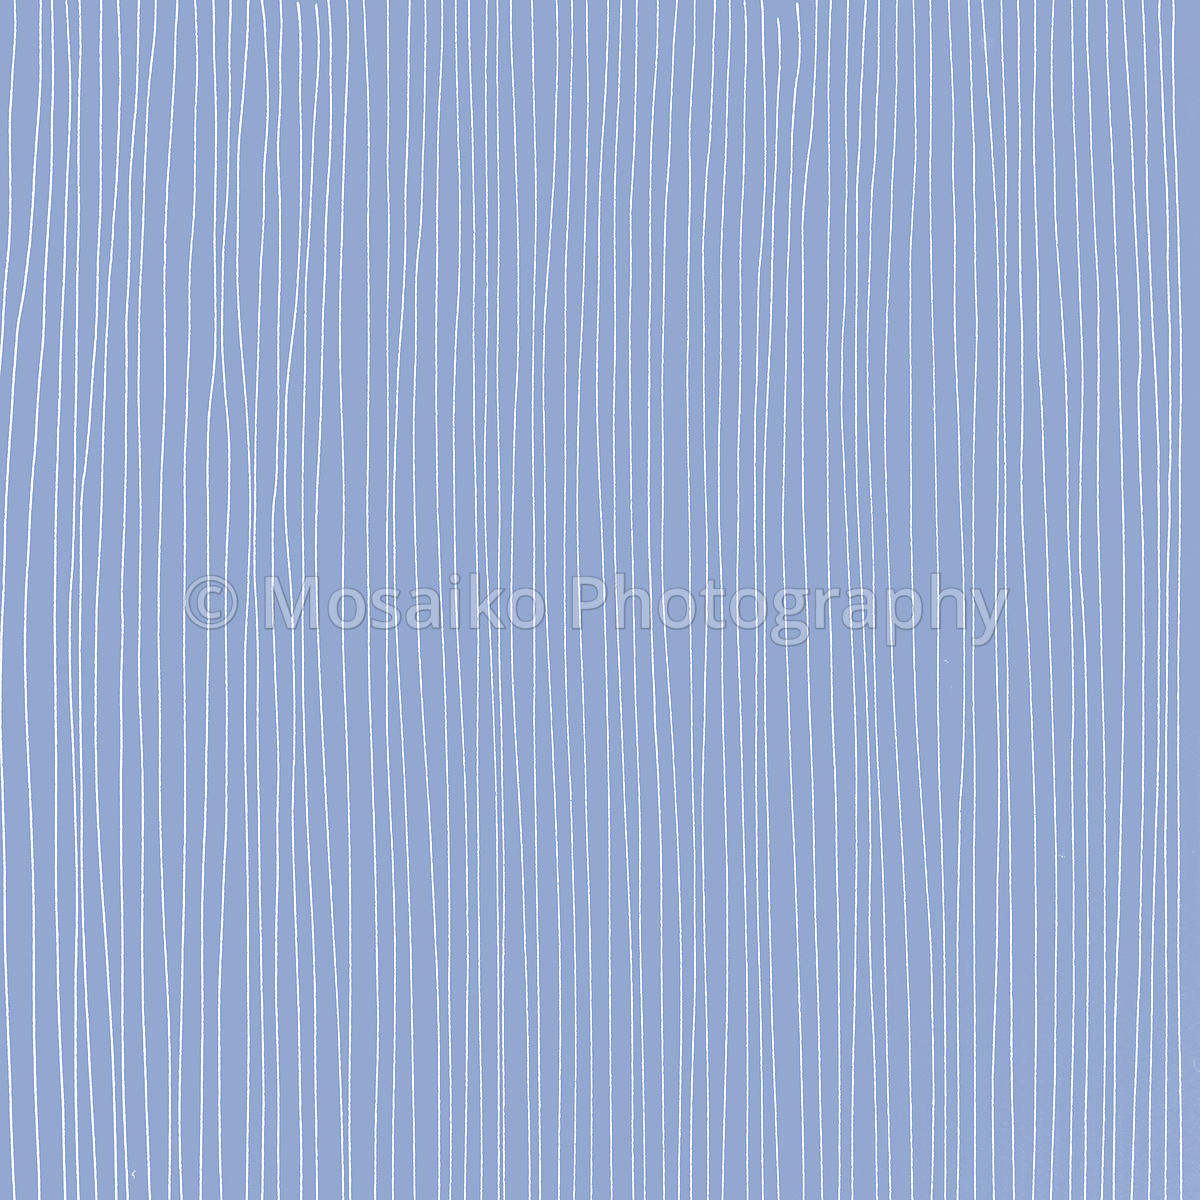 hand drawn elegant white lines on pastel tone background - abstract graphic design